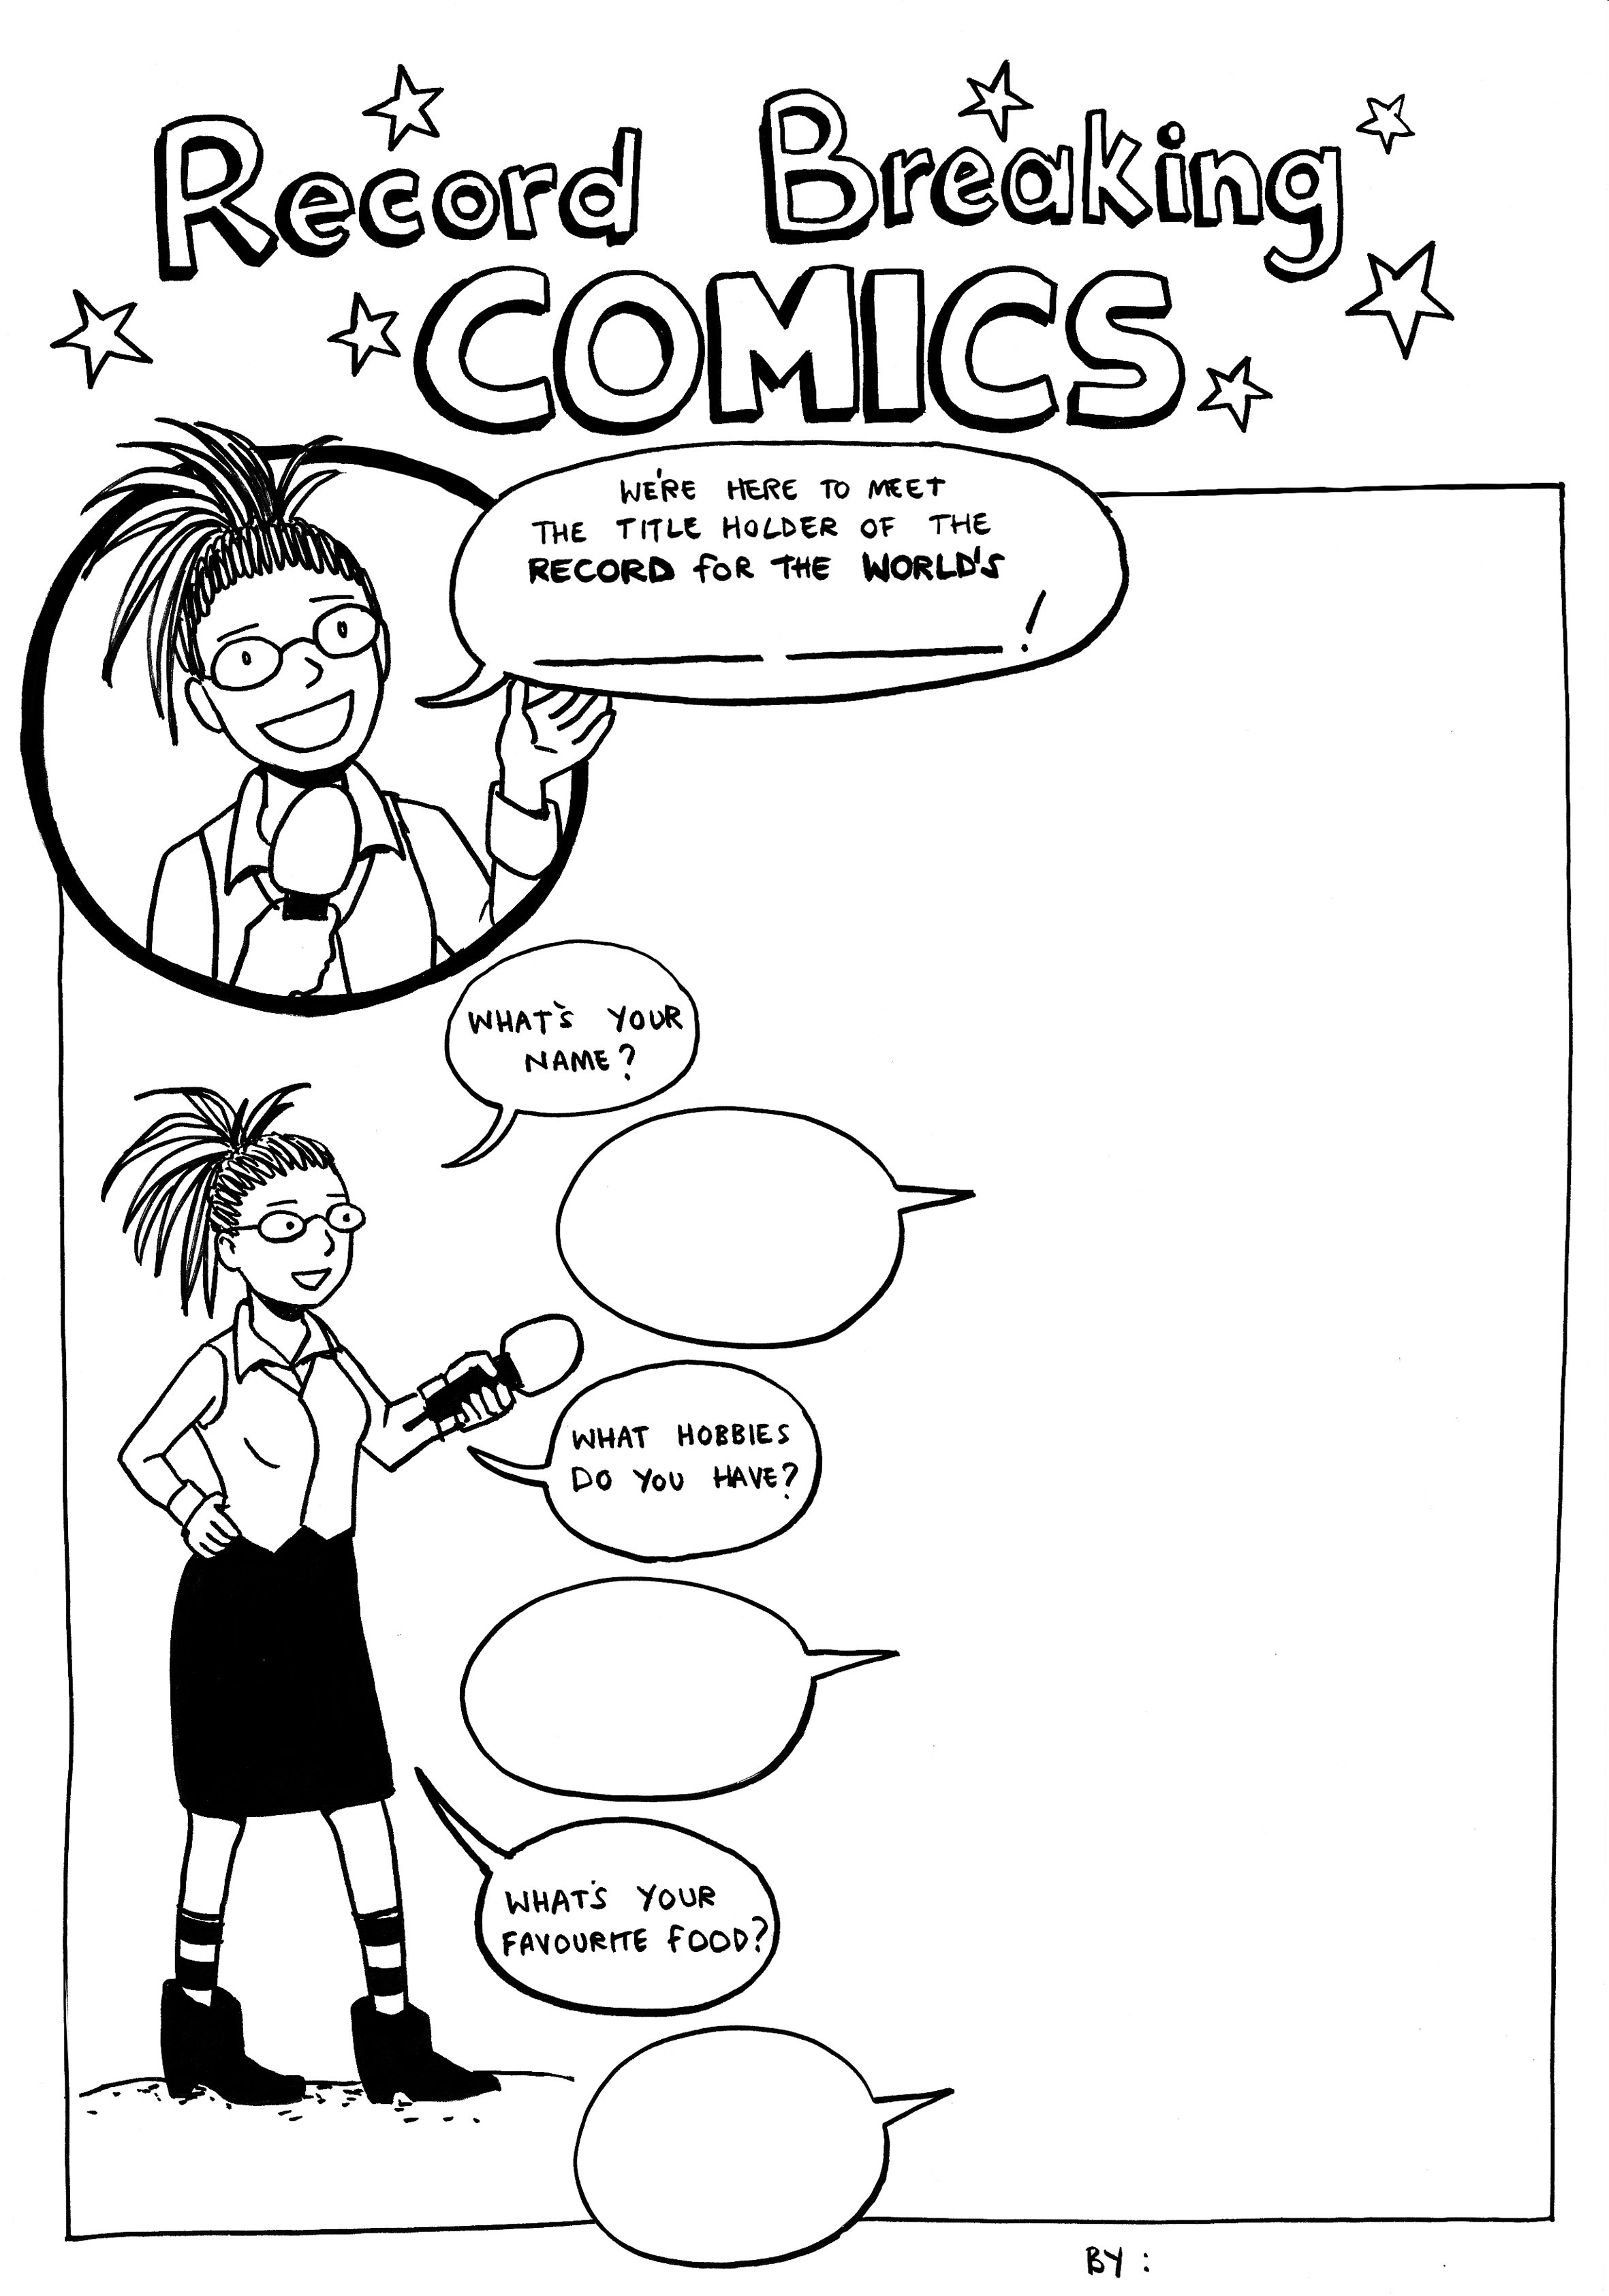 Karen Comics Challenge 2 - Interview